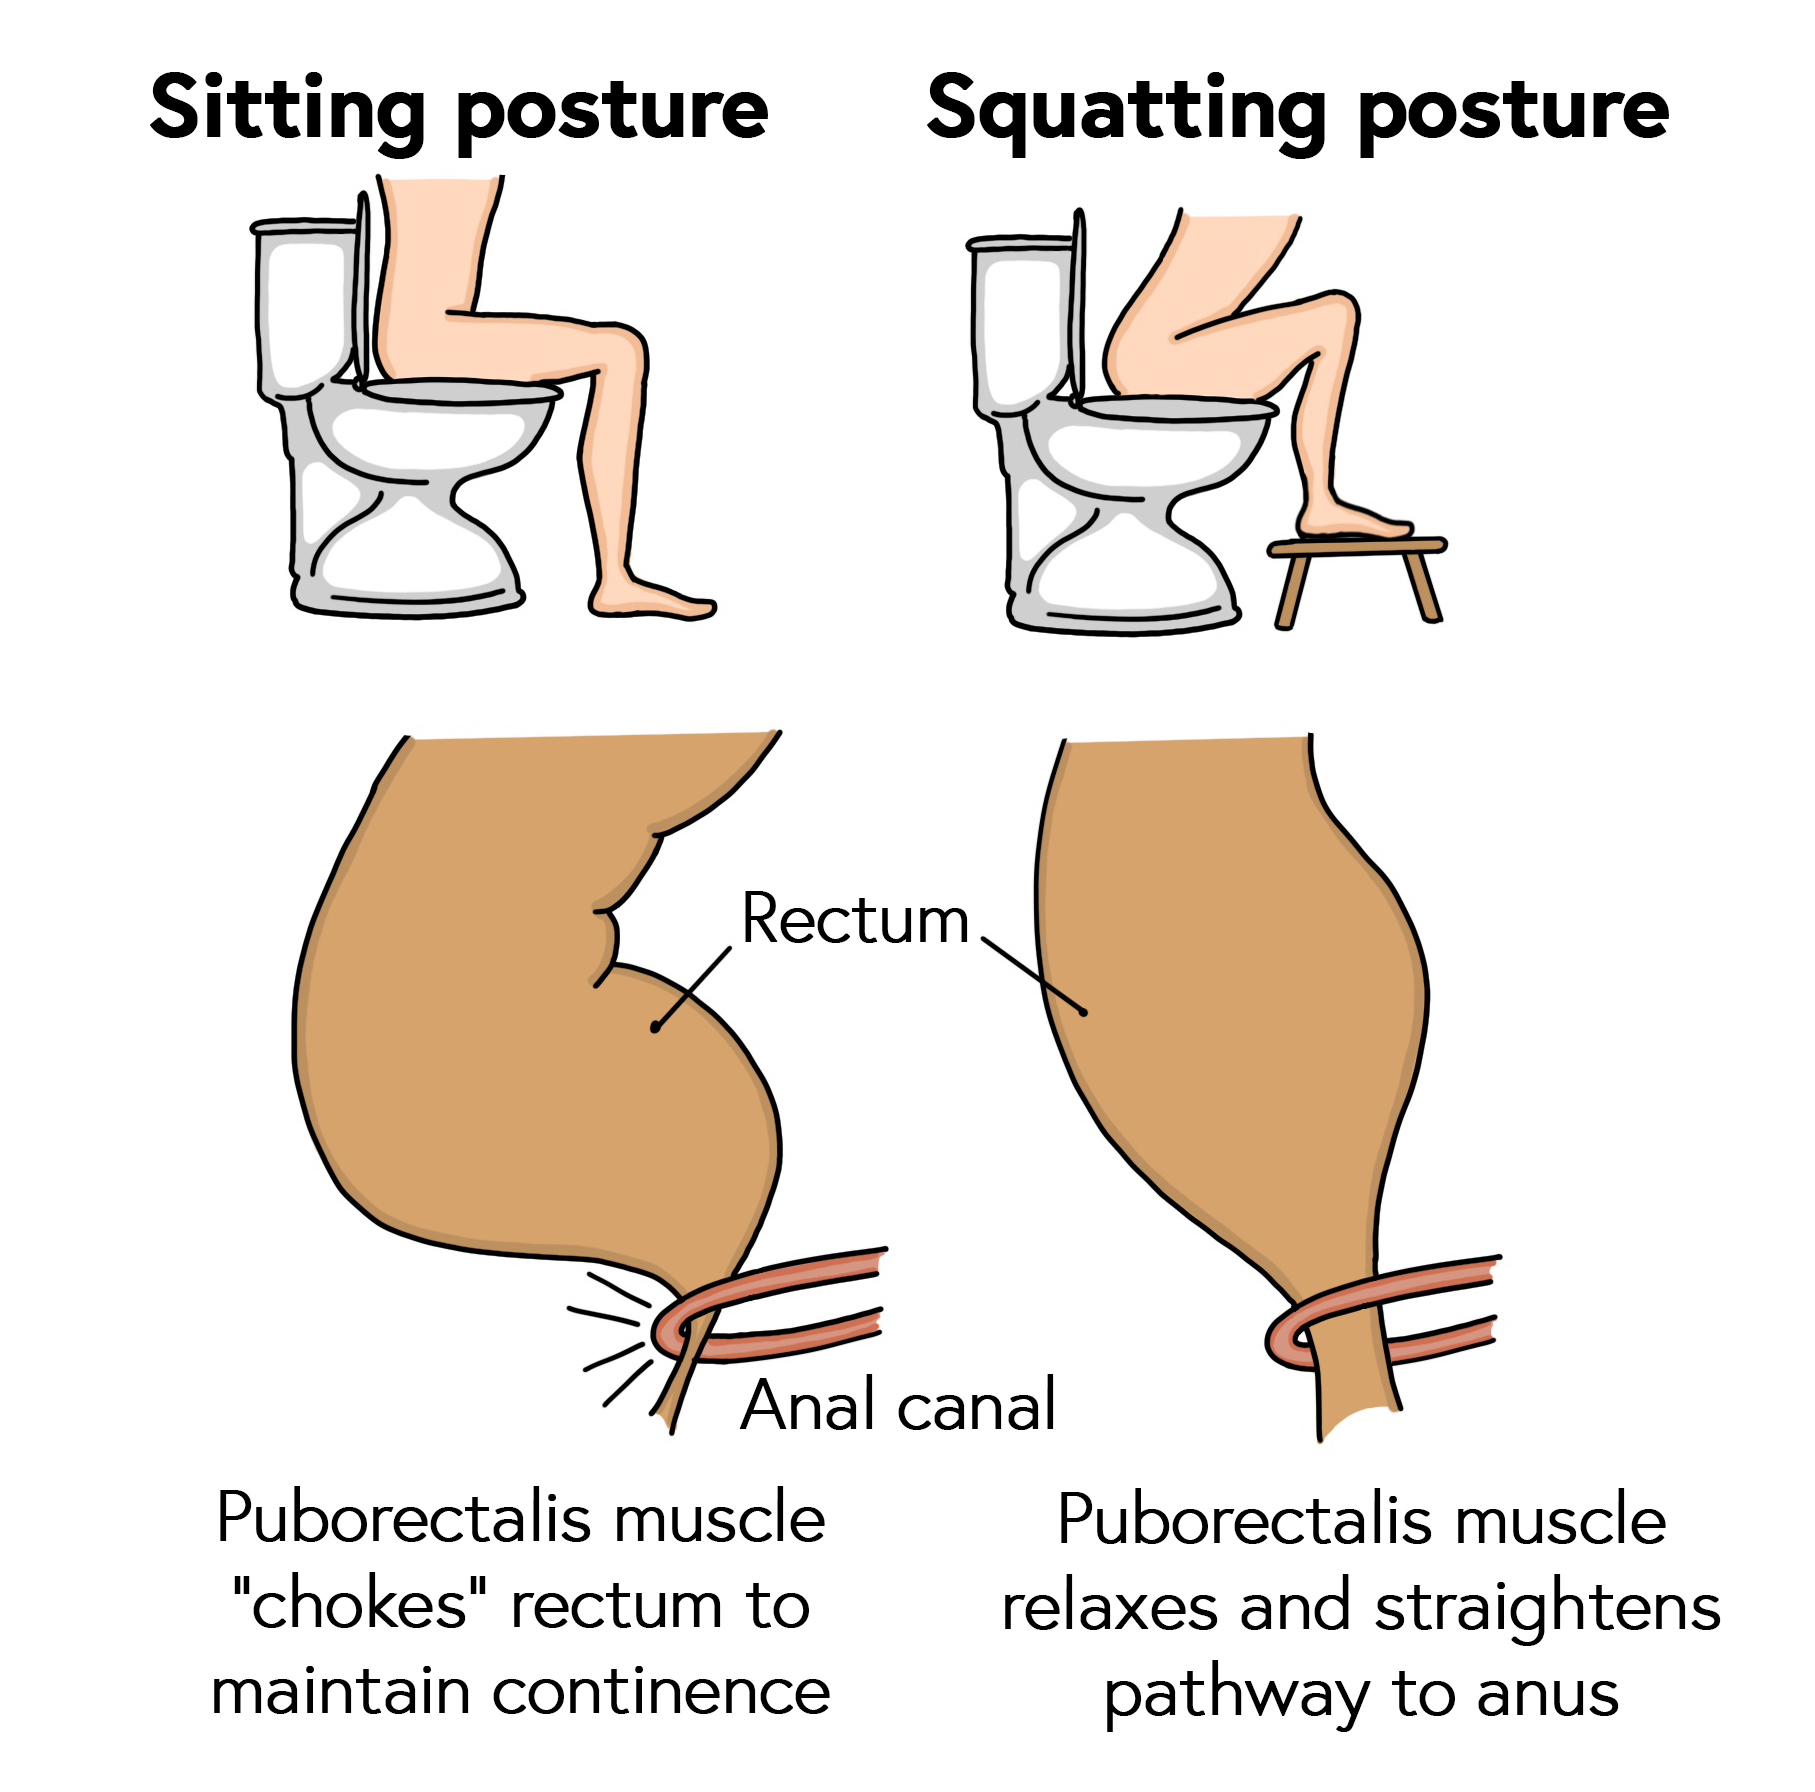 Correct posture on the toilet to relax the puborectalis muscle and straighten pathway to anus